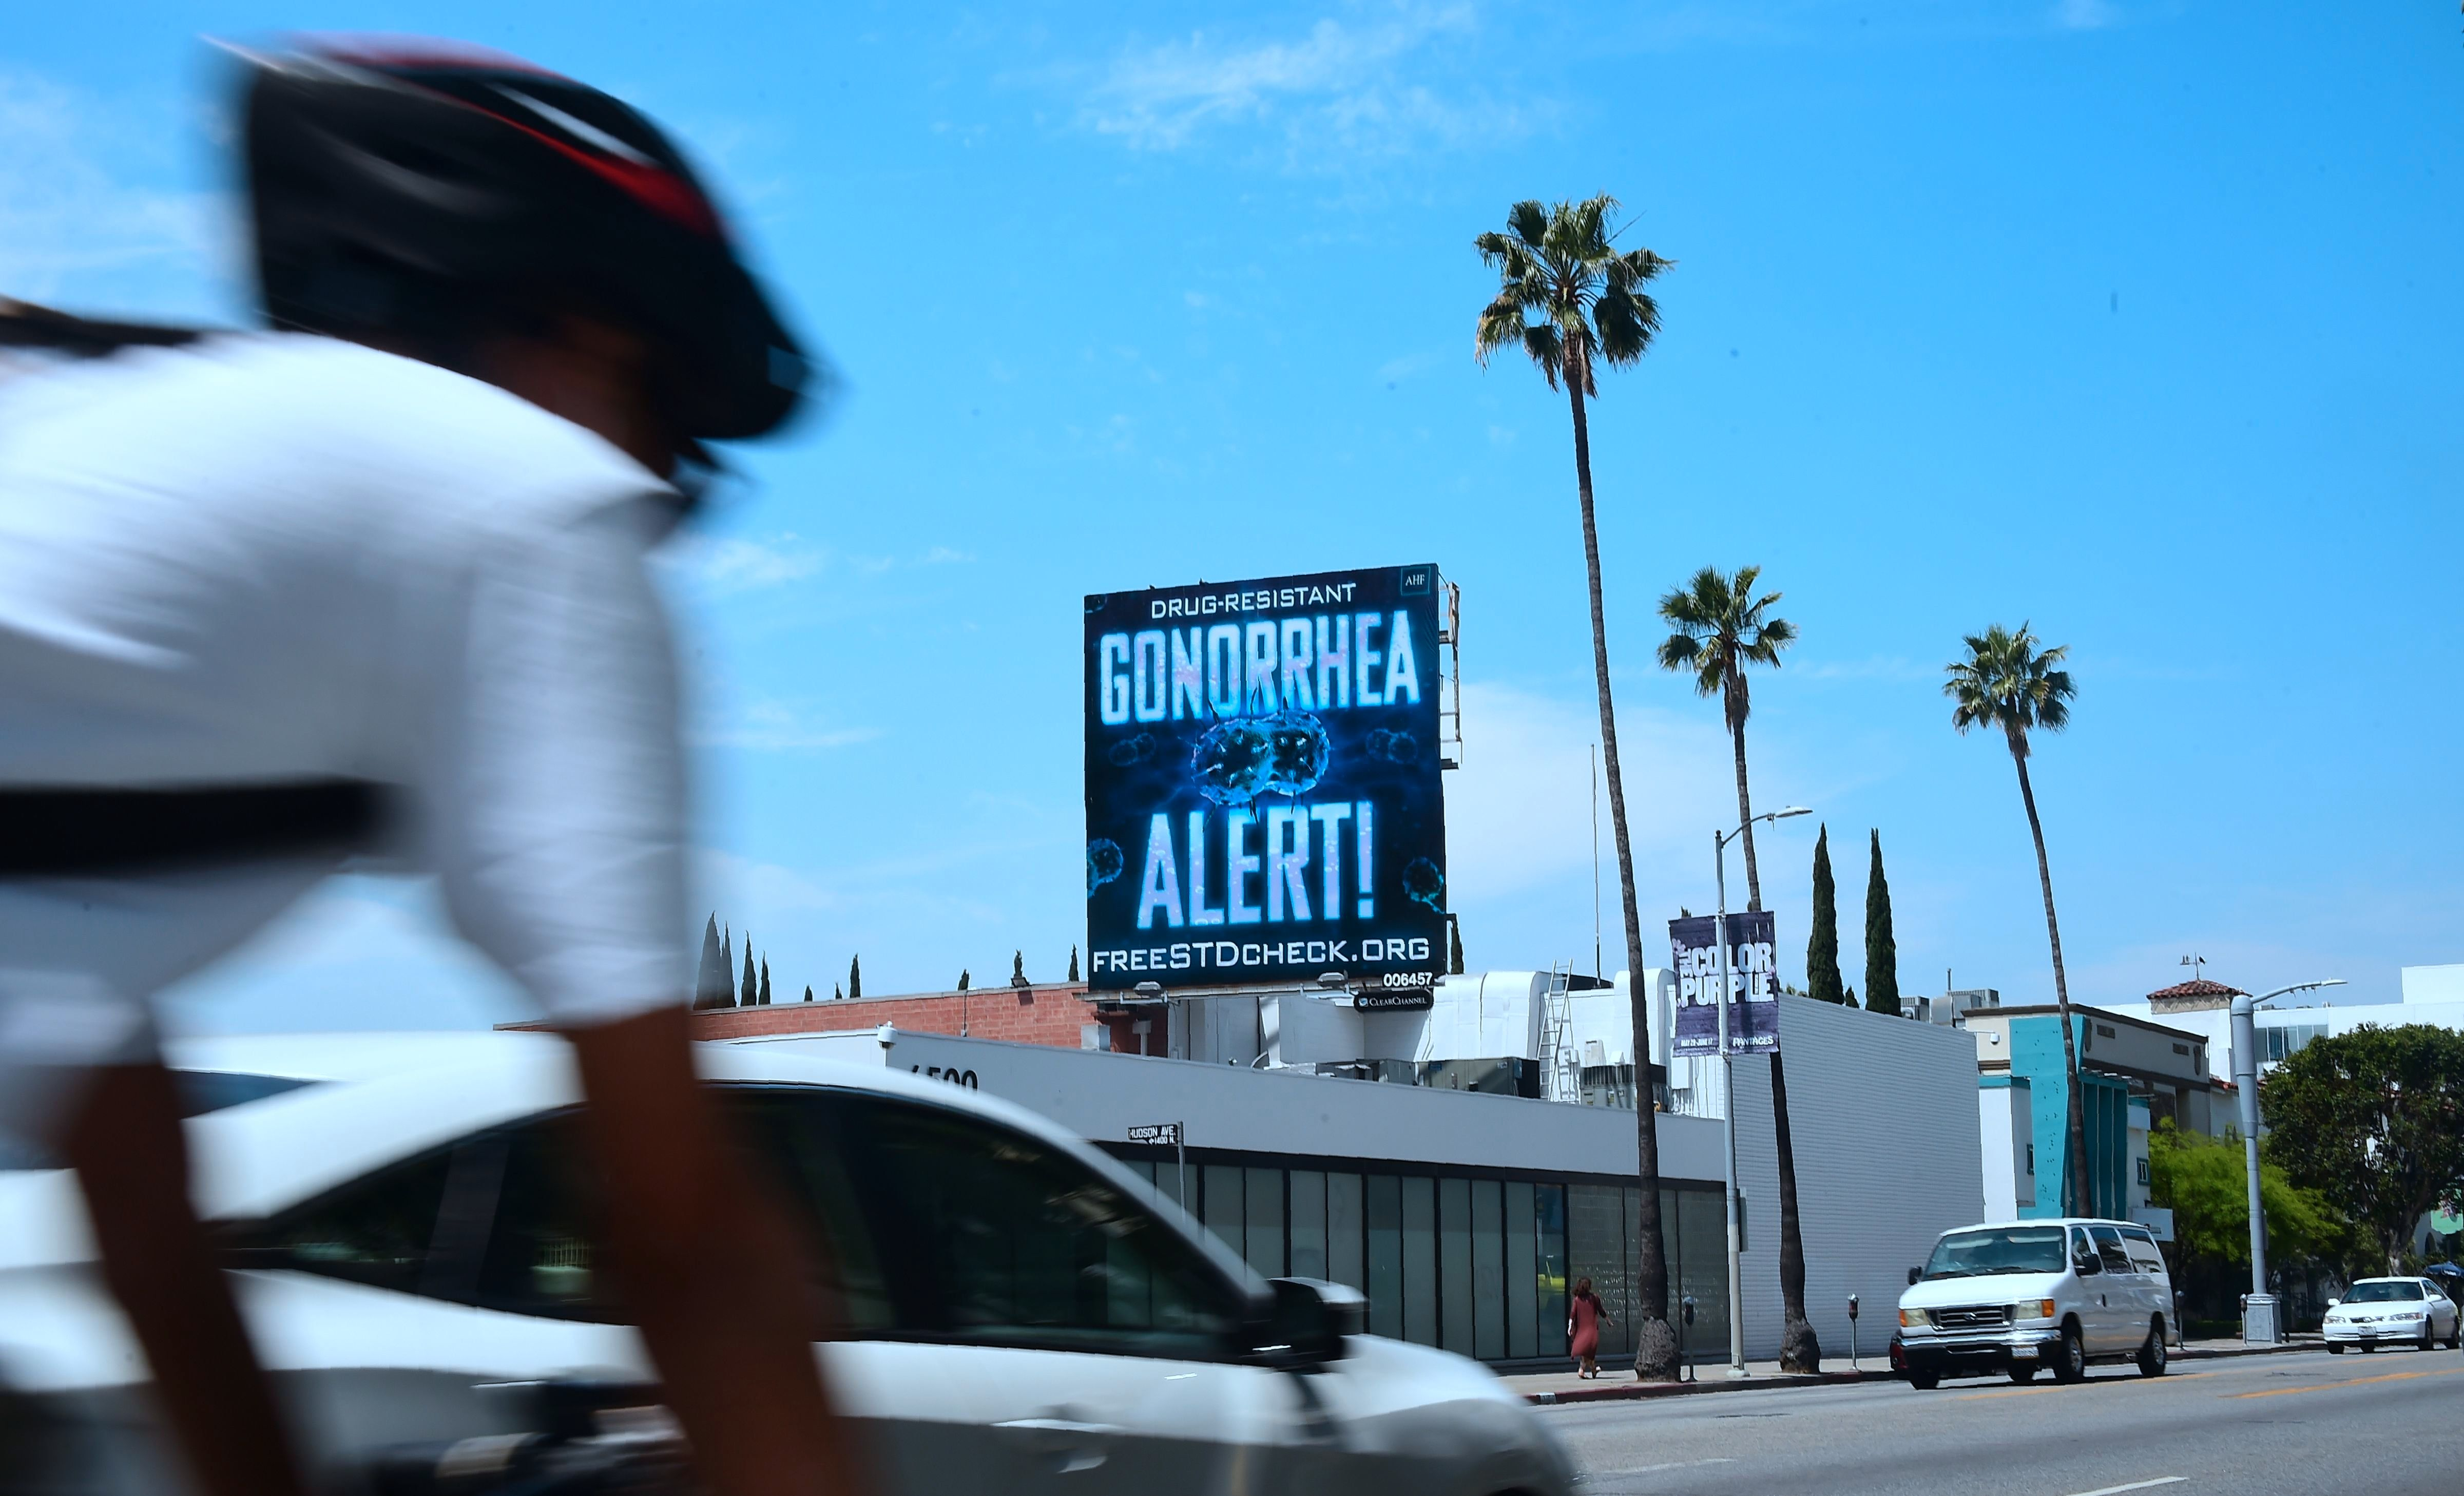 A billoard from the AIDS Healthcare Foundation (AHF) is seen on Sunset Boulevard in Hollywood, California on May 29, 2018 warning of a drug resistant Gonorrhea. - A billboard on Sunset Boulevard in Hollywood screams out a stark warning: 'drug-resistant gonorrhea alert!' Sexually transmitted diseases have made an alarming resurgence across the US, where 2016 saw a record two million cases of chlamydia, gonorrhea and syphilis, including 628 cases of congenital syphilis. But California, the most populous US state, stands out for its willingness to tackle the crisis head-on, with cases of the three ailments up 45 percent in 2017 from five years ago. (Photo by Frederic J. BROWN / AFP) / TO GO WITH AFP STORY by Javier TOVAR, 'California on front line as STDs run rampant in US'        (Photo credit should read FREDERIC J. BROWN/AFP/Getty Images)